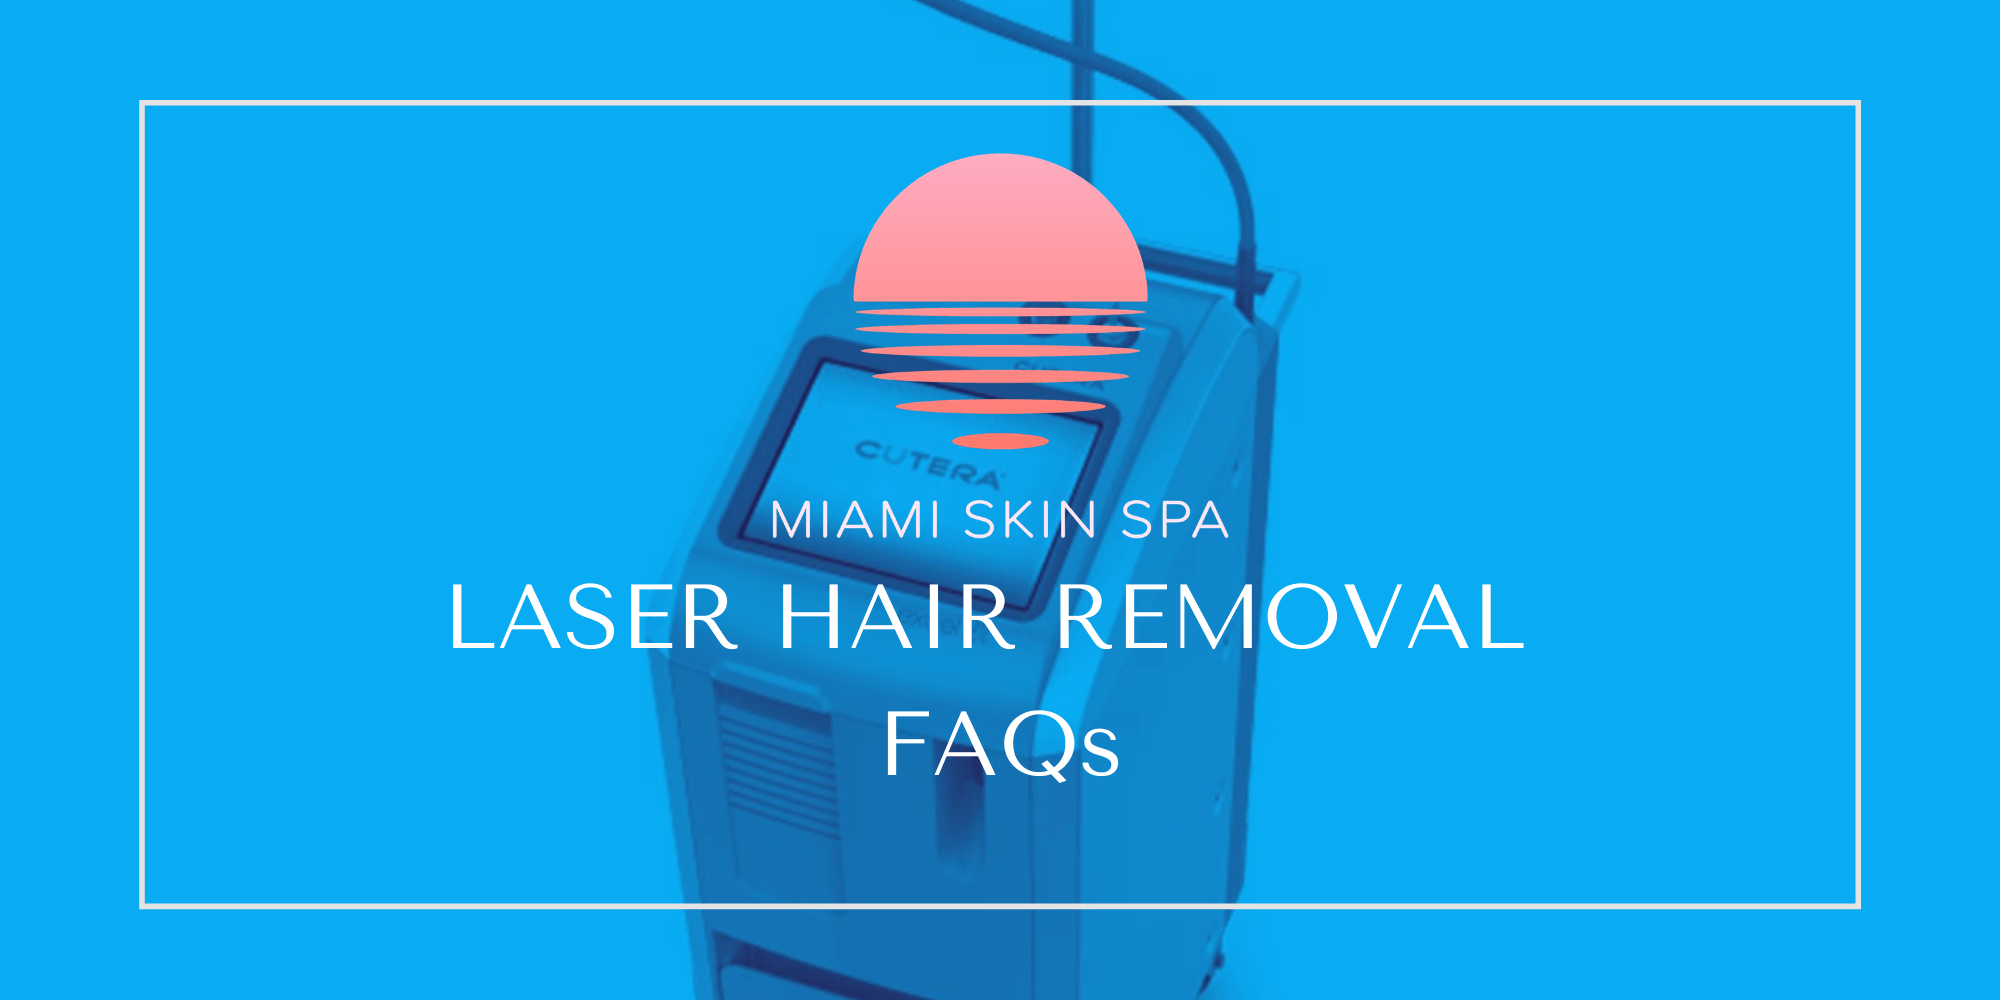 Laser Hair Removal FAQs banner image with the Miami Skin Spa Logo and the Excel HR Laser Hair Removal device on the background